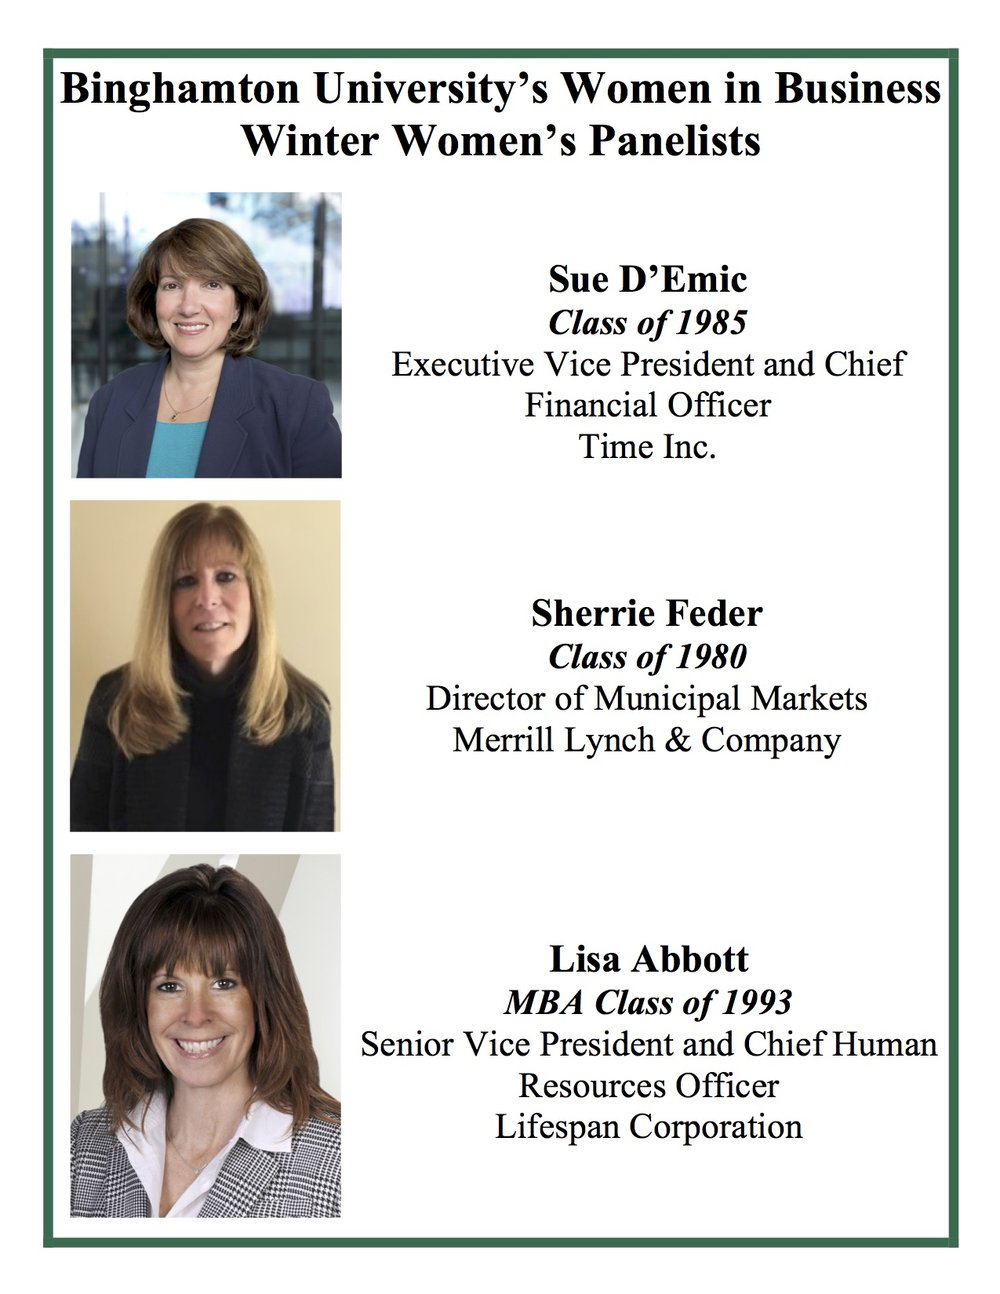 Binghamton_University_s_Women_in_Business_Winter_Women_s_Panelists.jpg